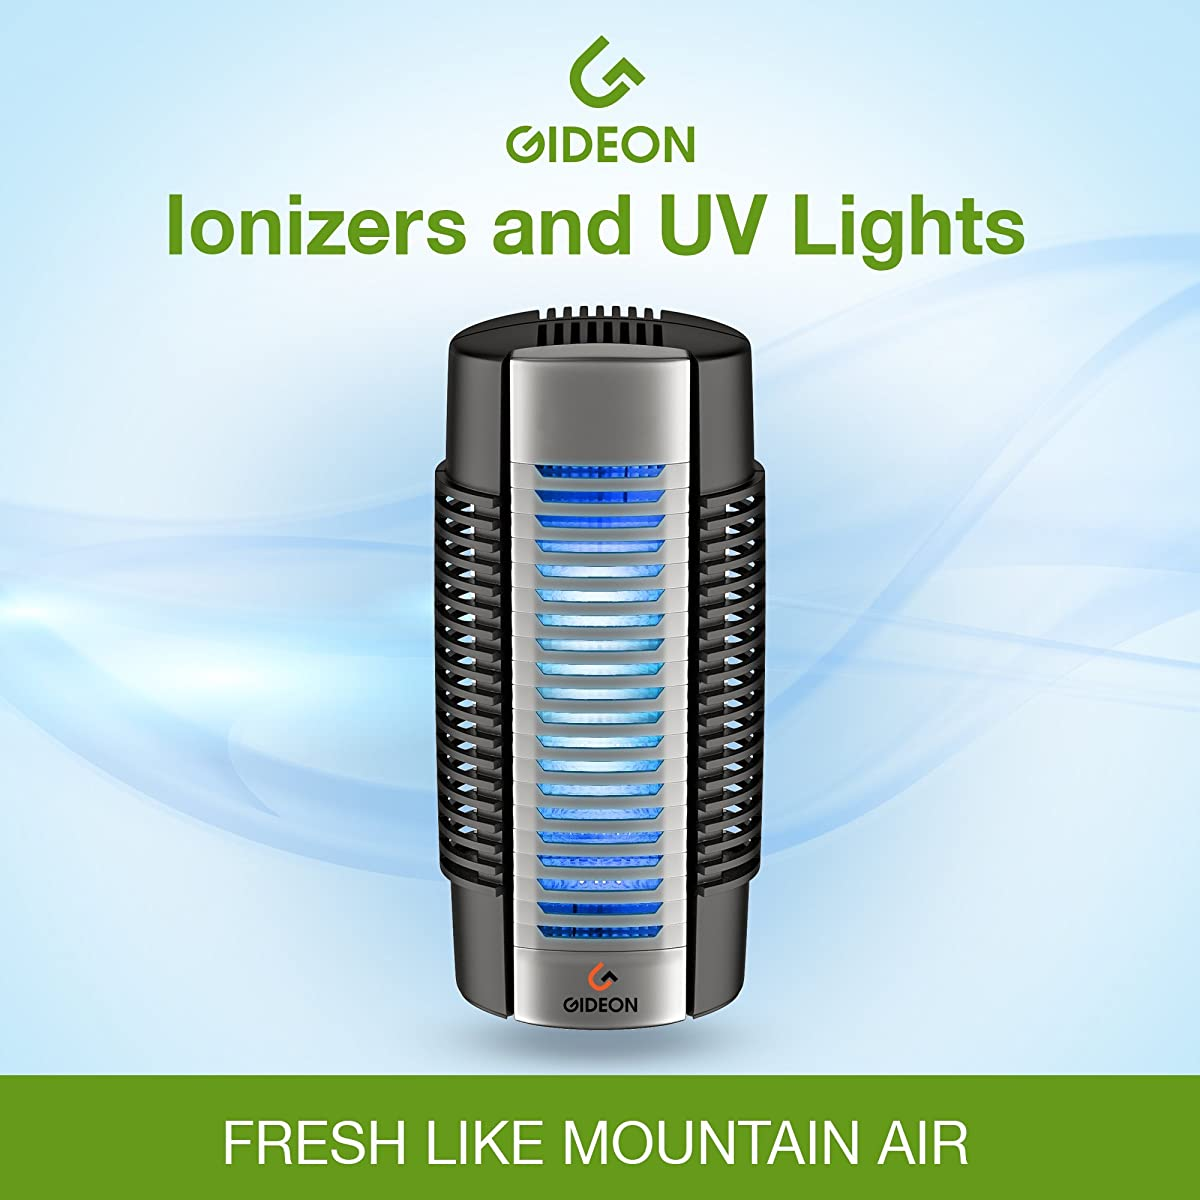 Gideon Electronic Plug-in Air Purifier with UV Air Sanitizer, Ion Purifier and Fan – Permanent Filter - Eliminates all germs, odors, allergens and pollutants